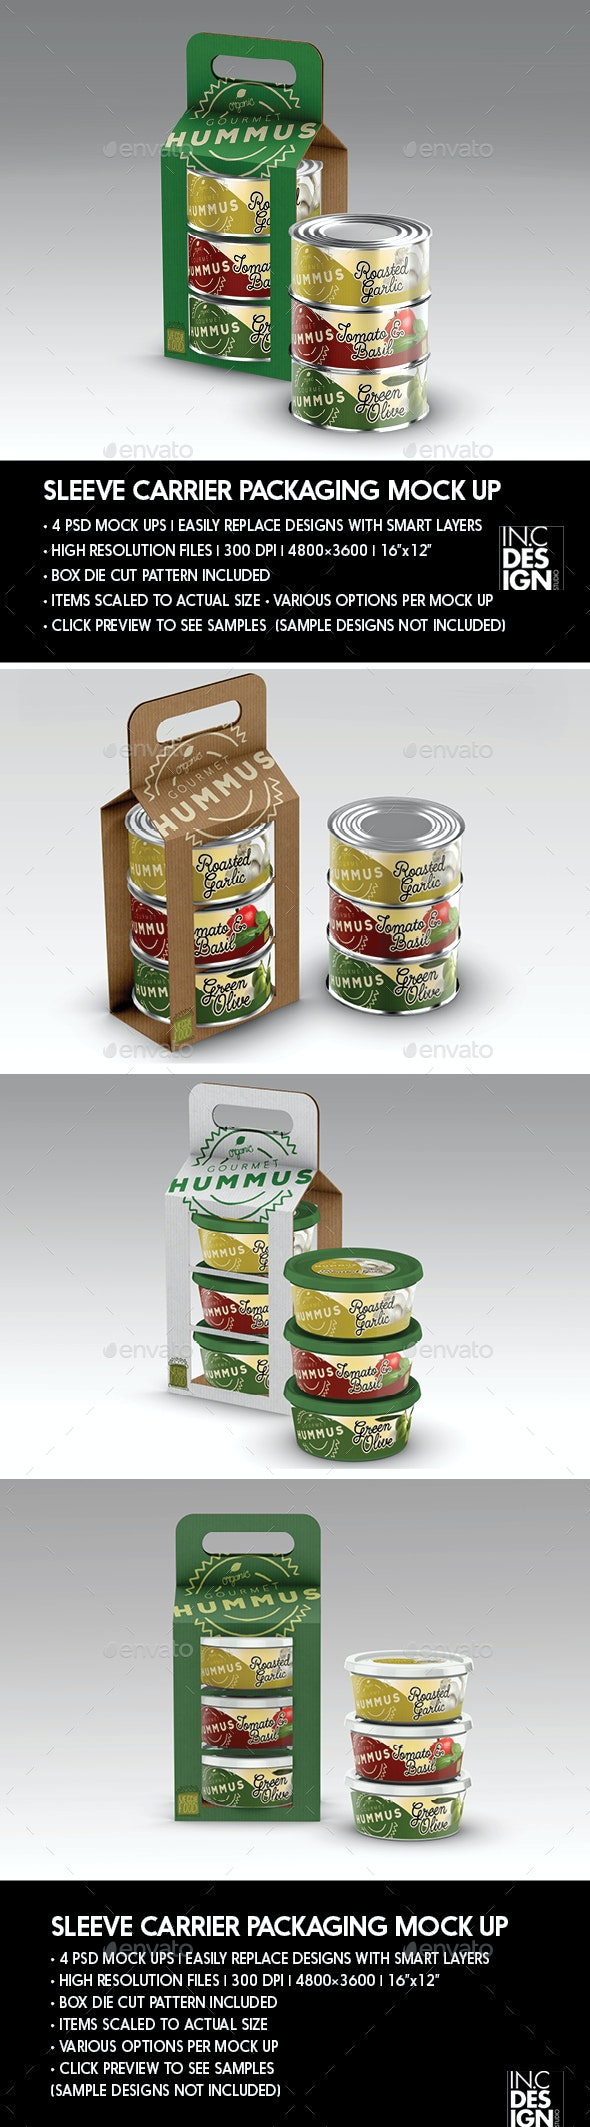 Packaging Mock Up Sleeve Carrier for Cans or Tubs - Product Mock-Ups Graphics